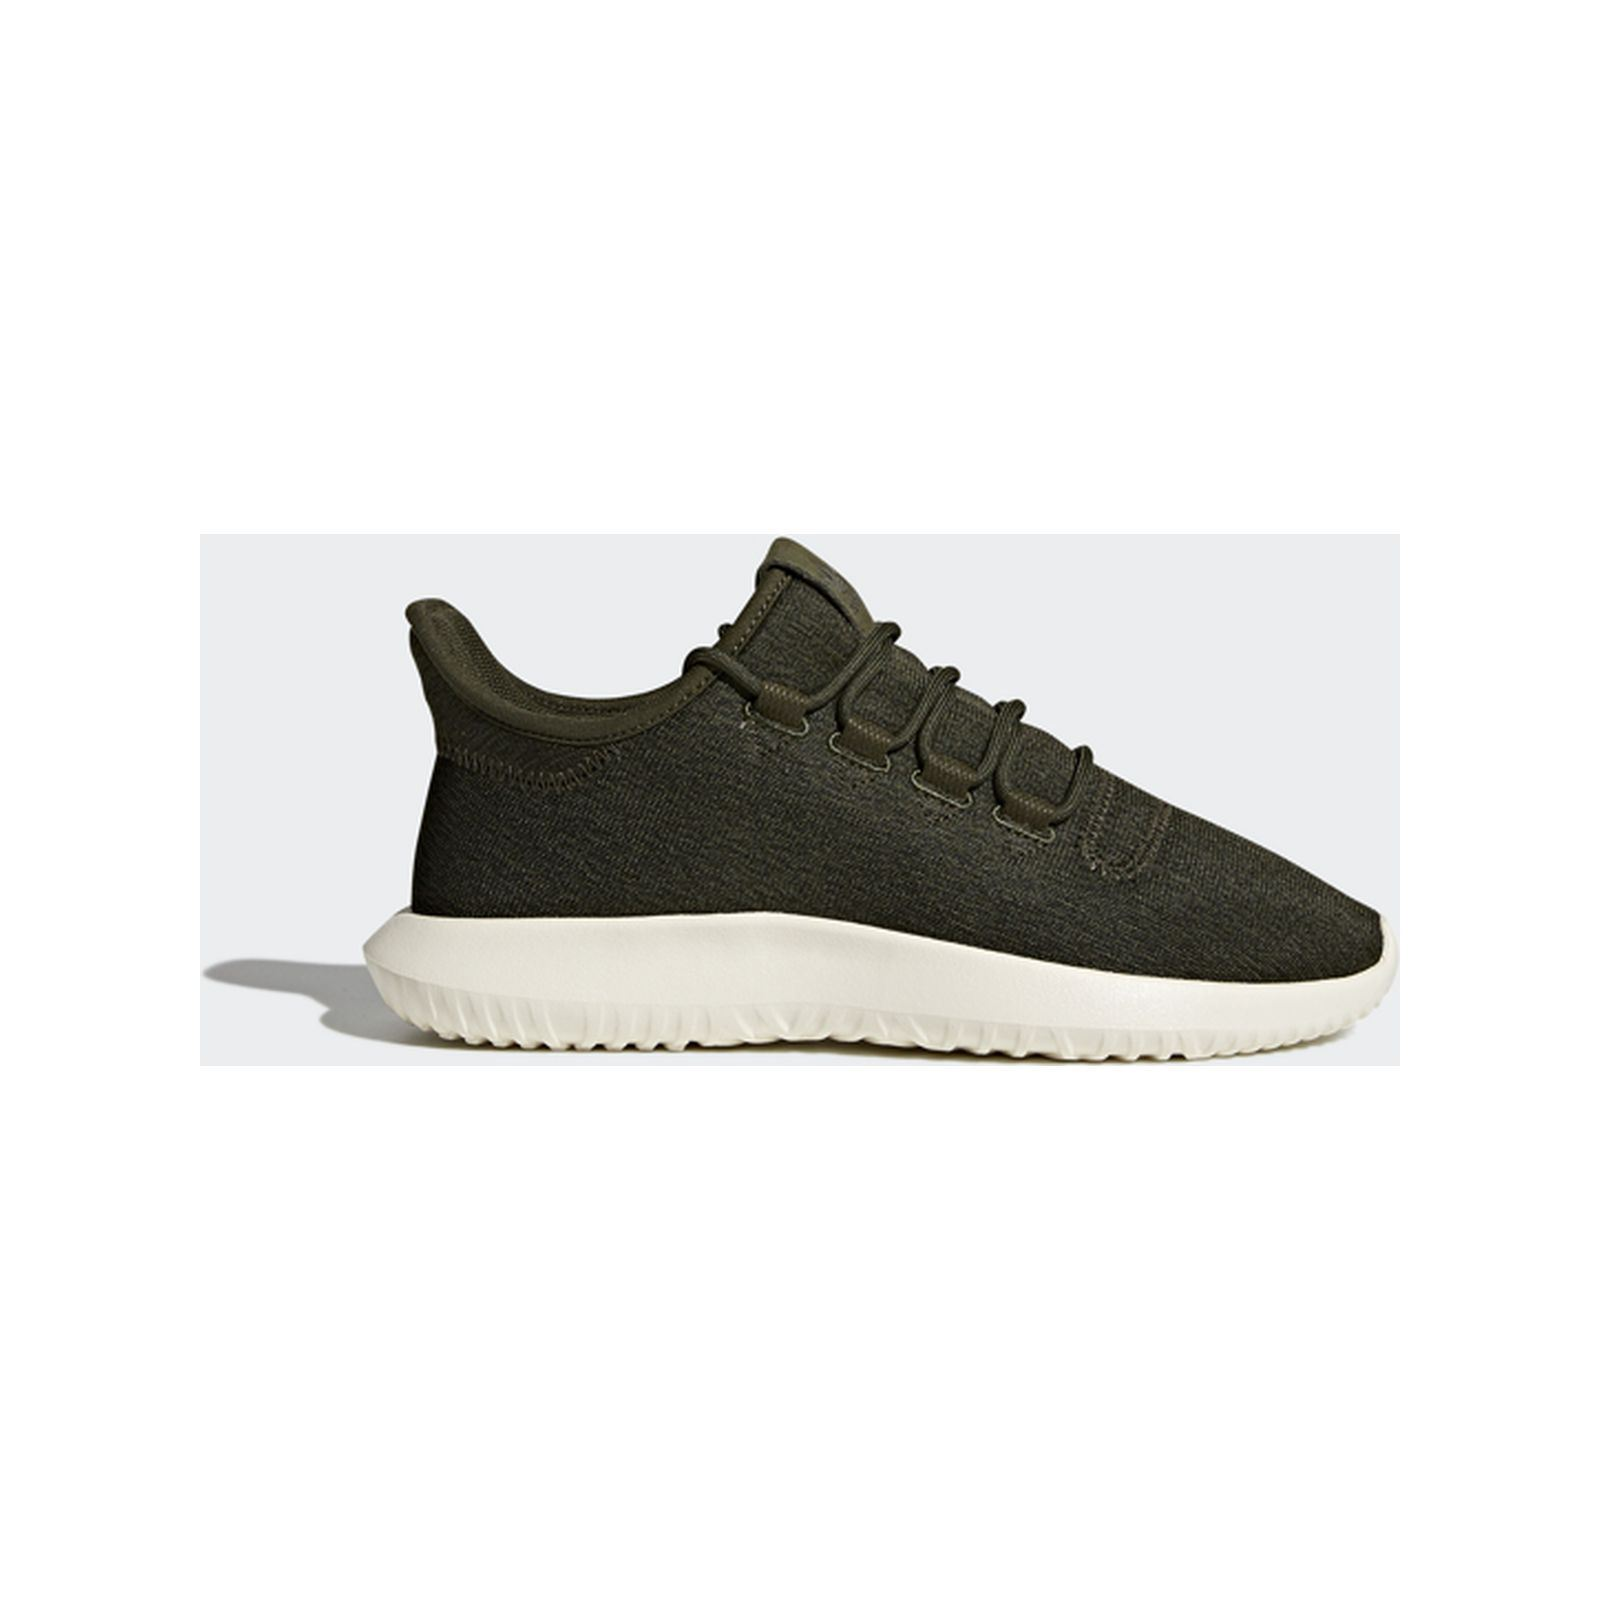 ADIDAS ORIGINALS Tubular-shadow - Baskets - kaki